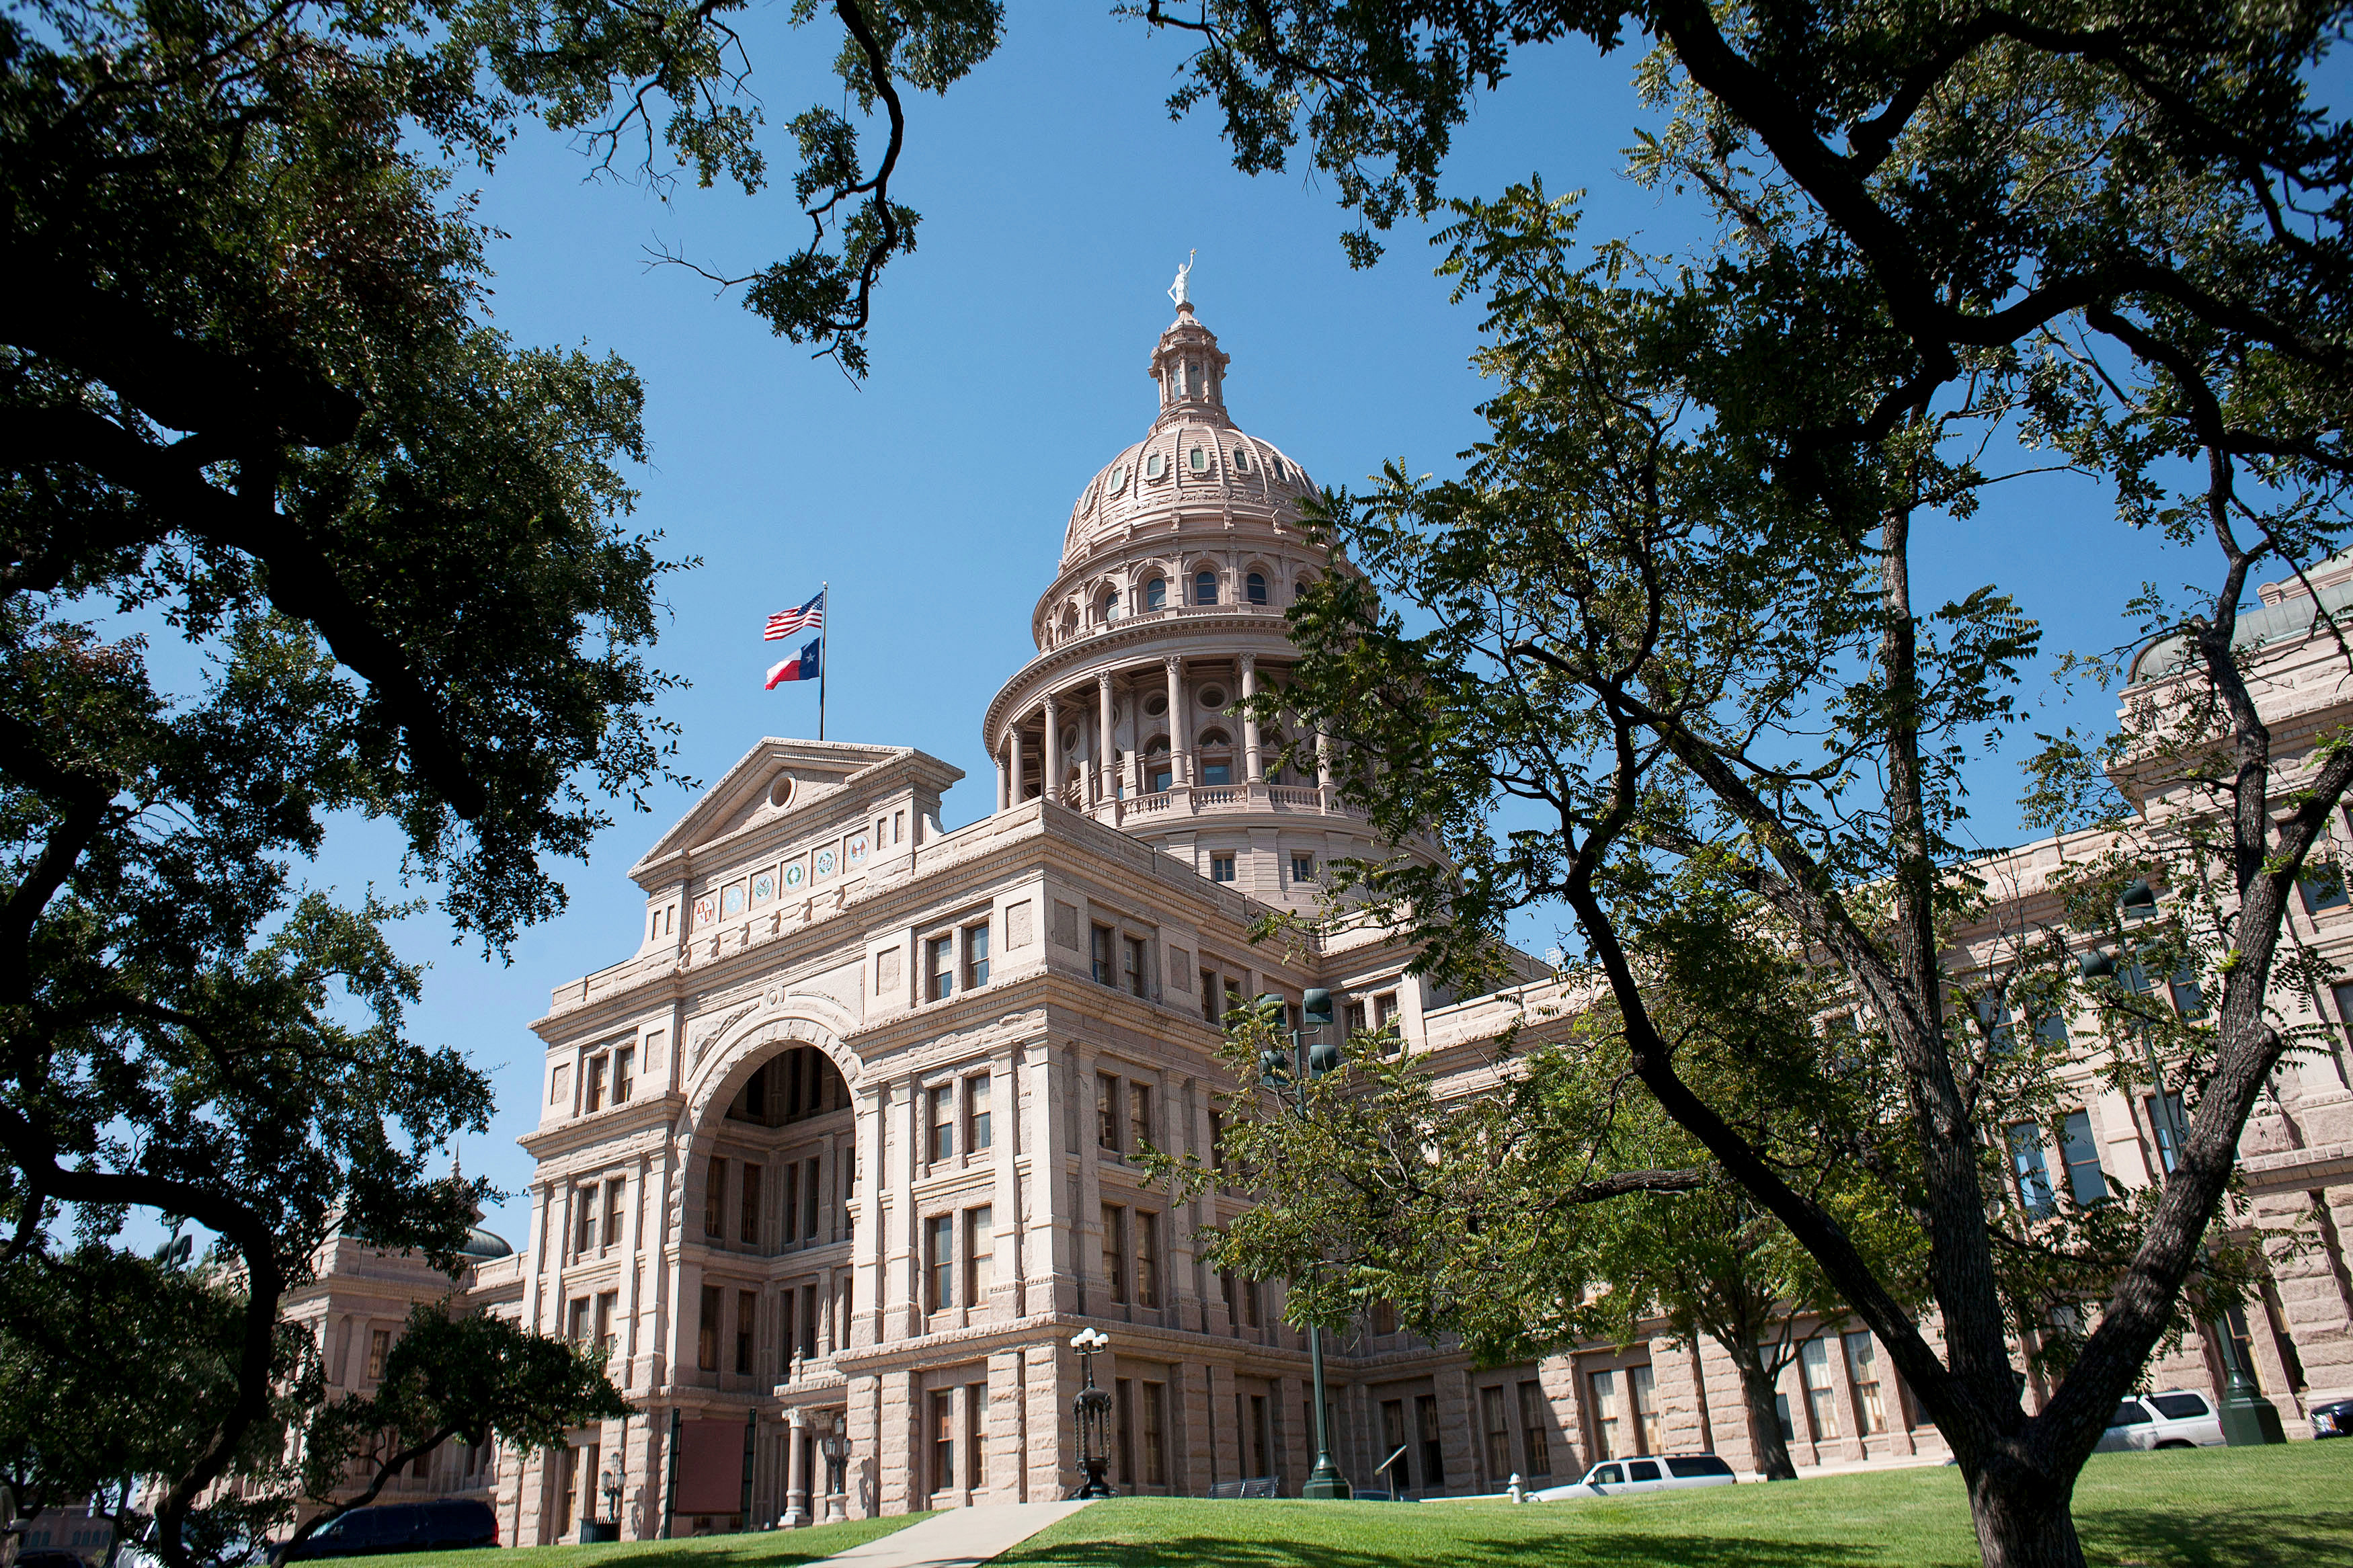 FILE PHOTO: The Texas capitol building, crafted from pink granite, is seen in Austin, Texas September 19, 2012. REUTERS/Julia Robinson/File Photo